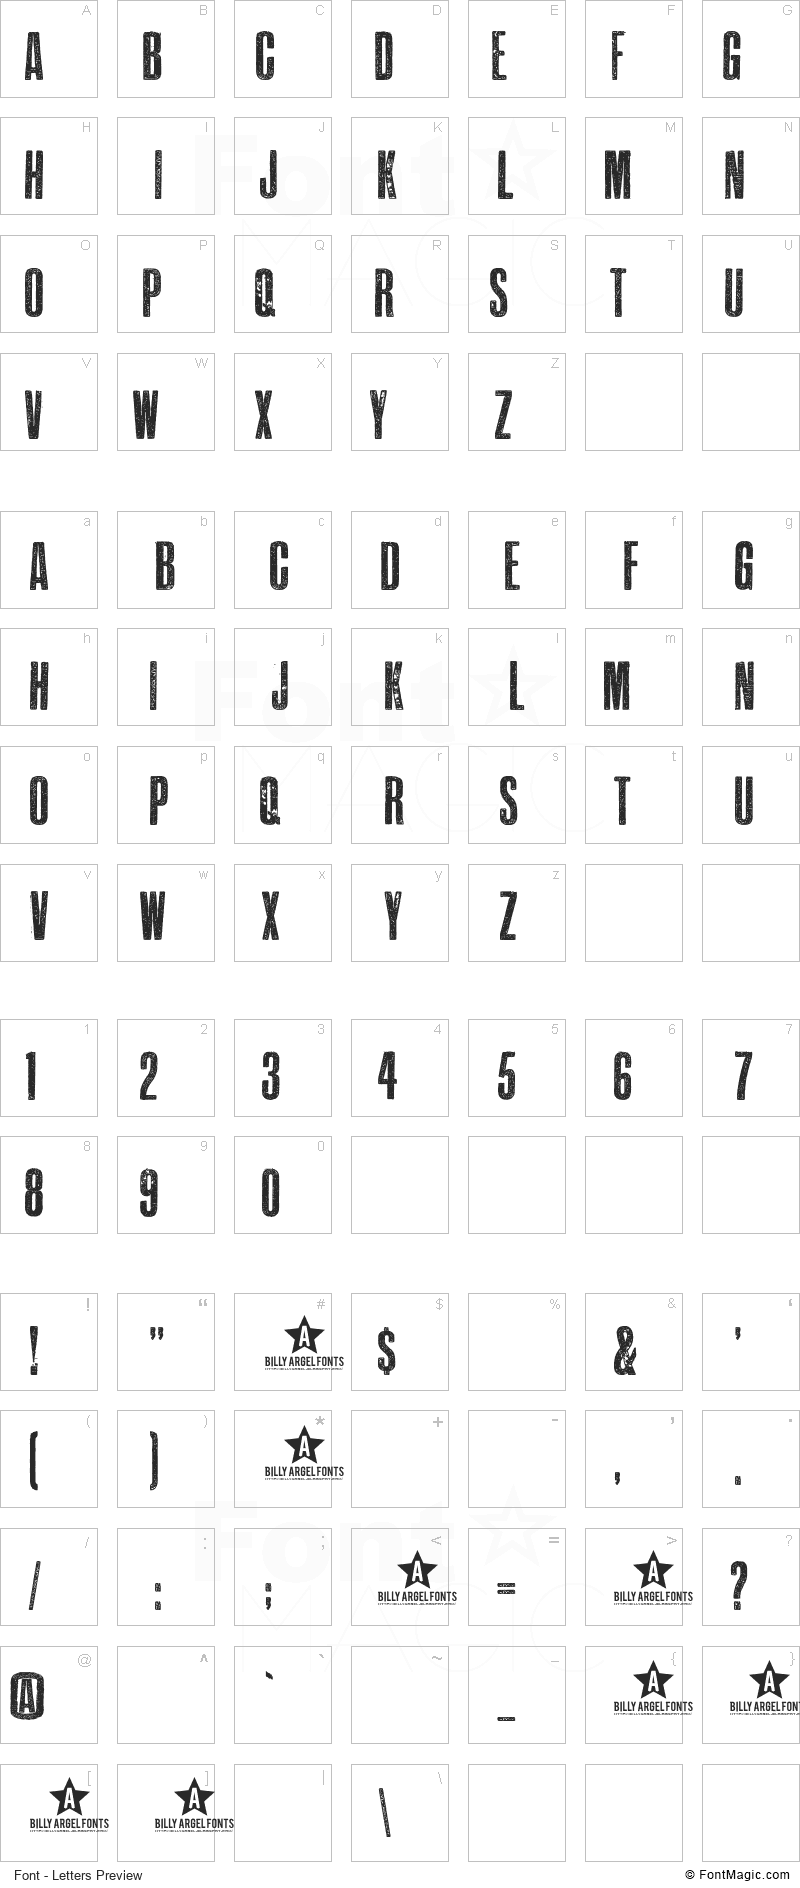 Epidemia Font - All Latters Preview Chart